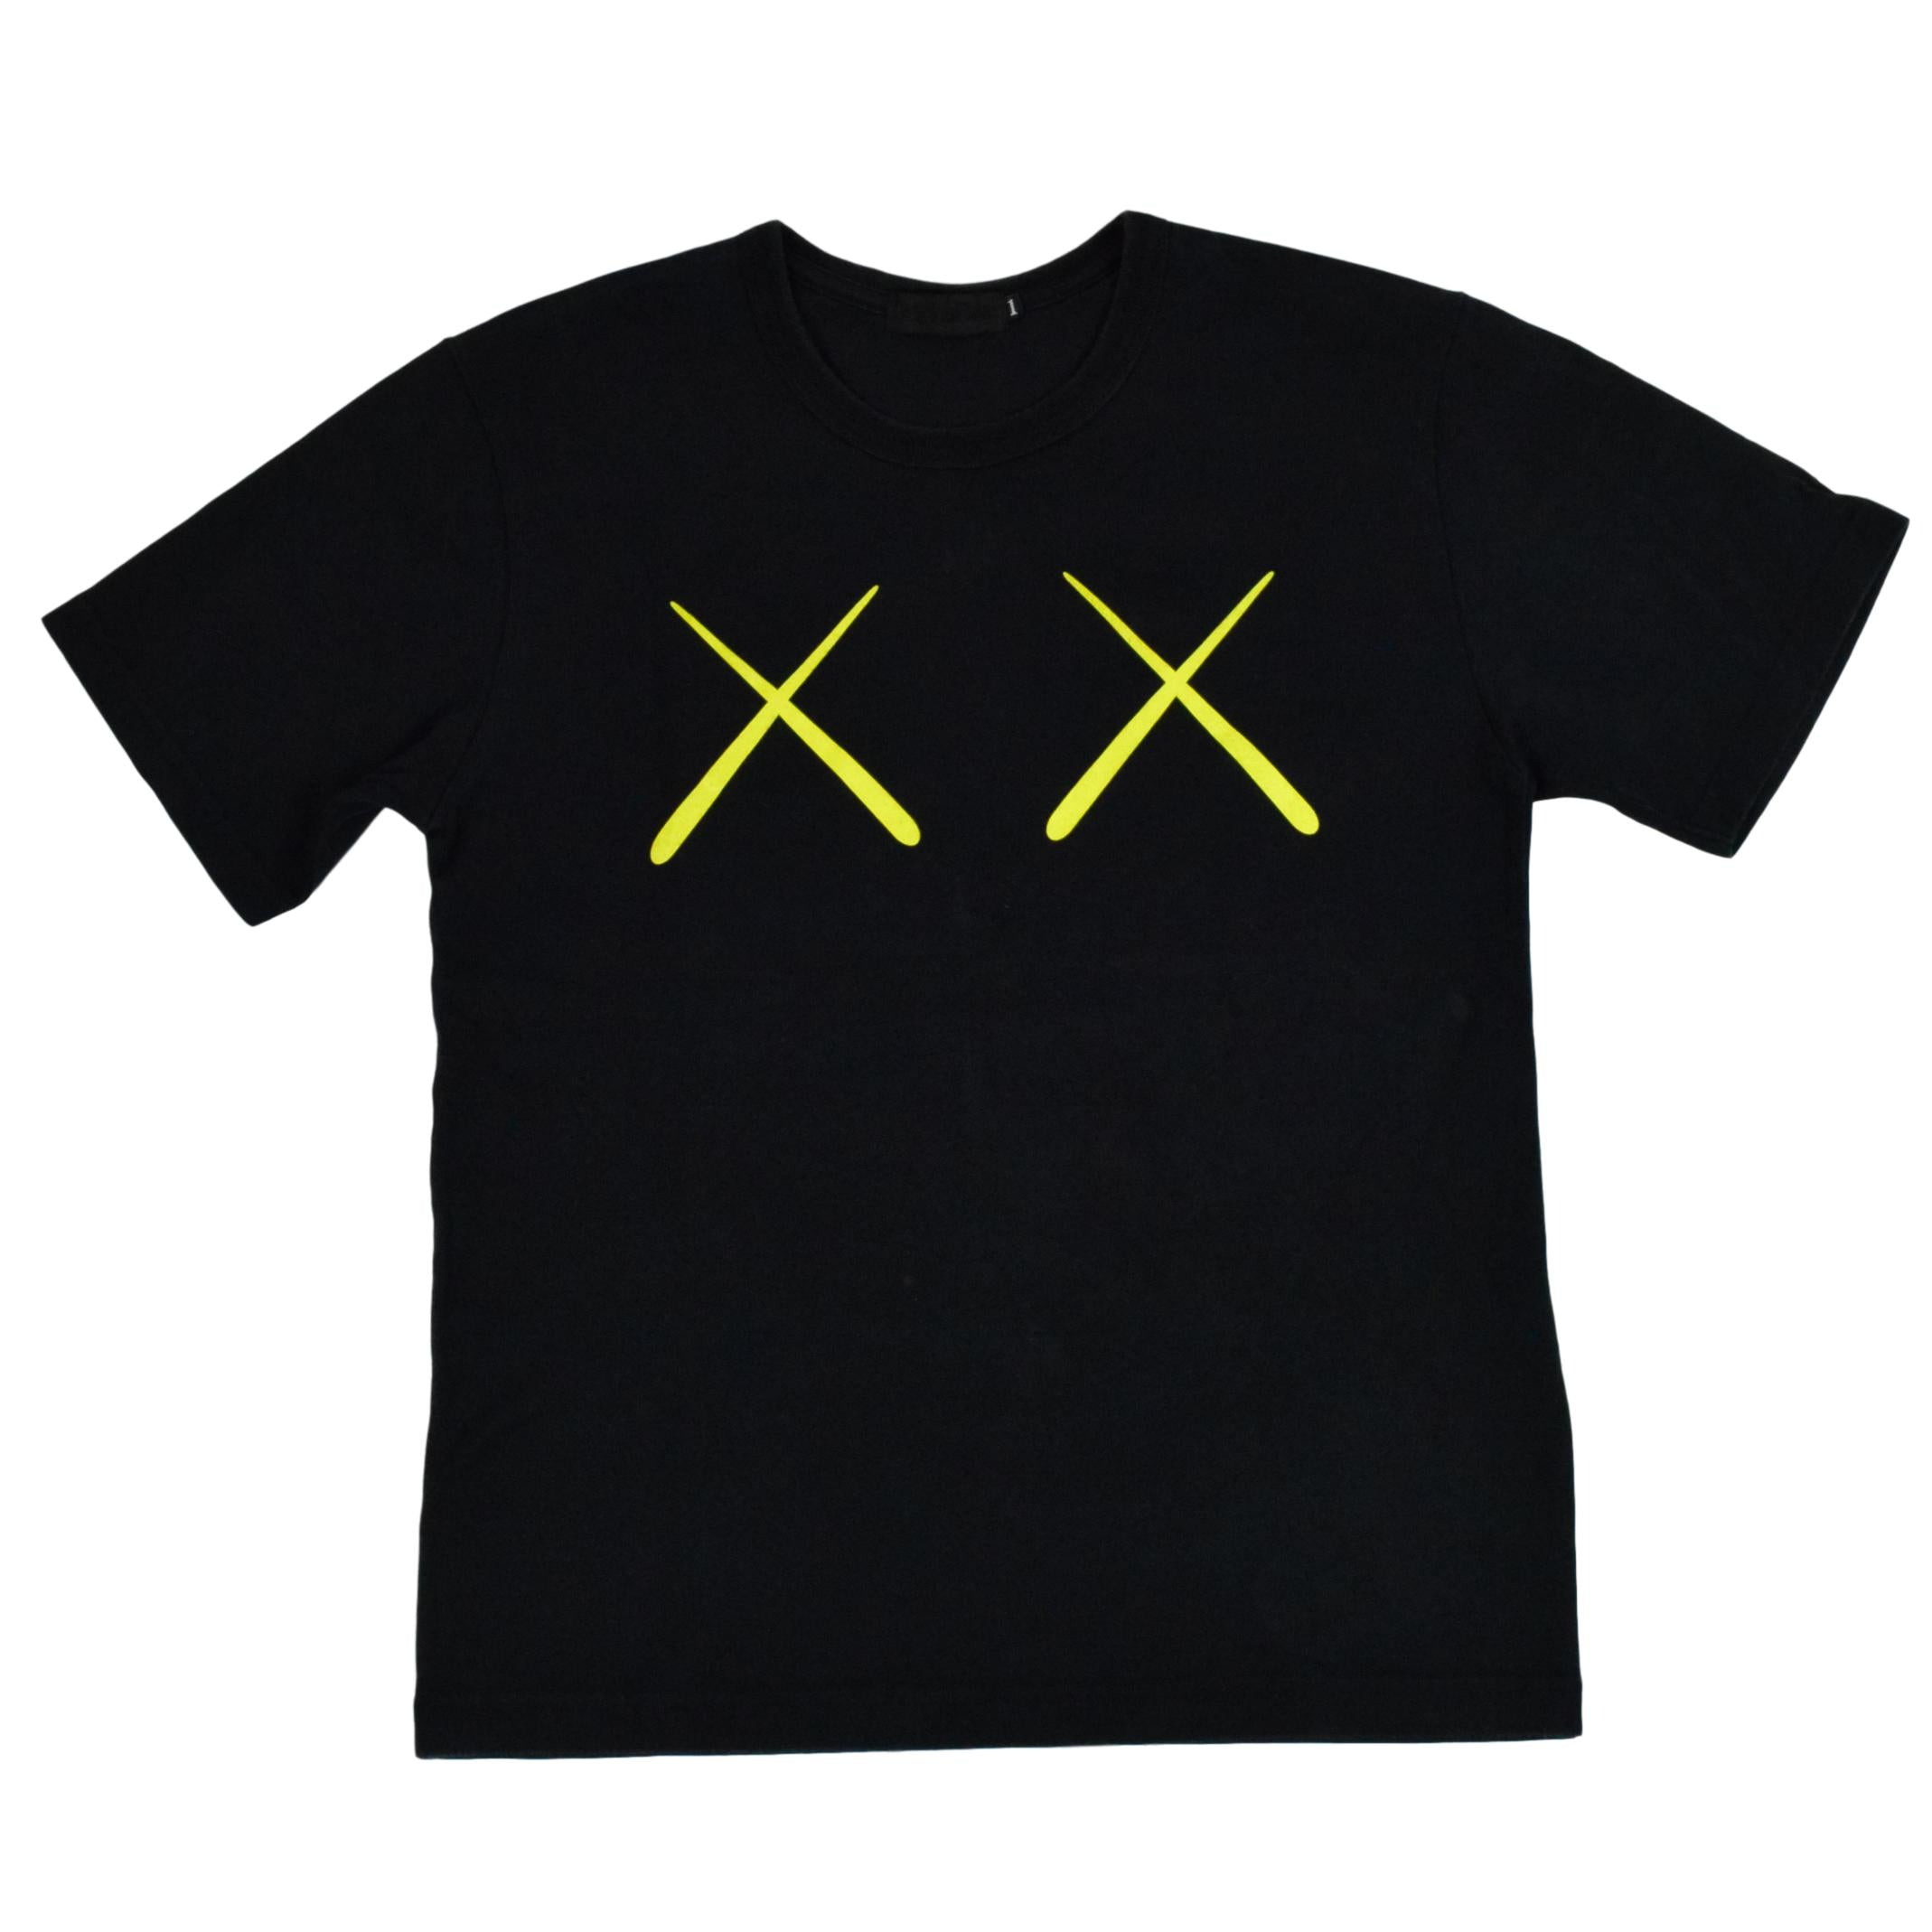 "KAWS Original Fake ""XX"" T-Shirt"